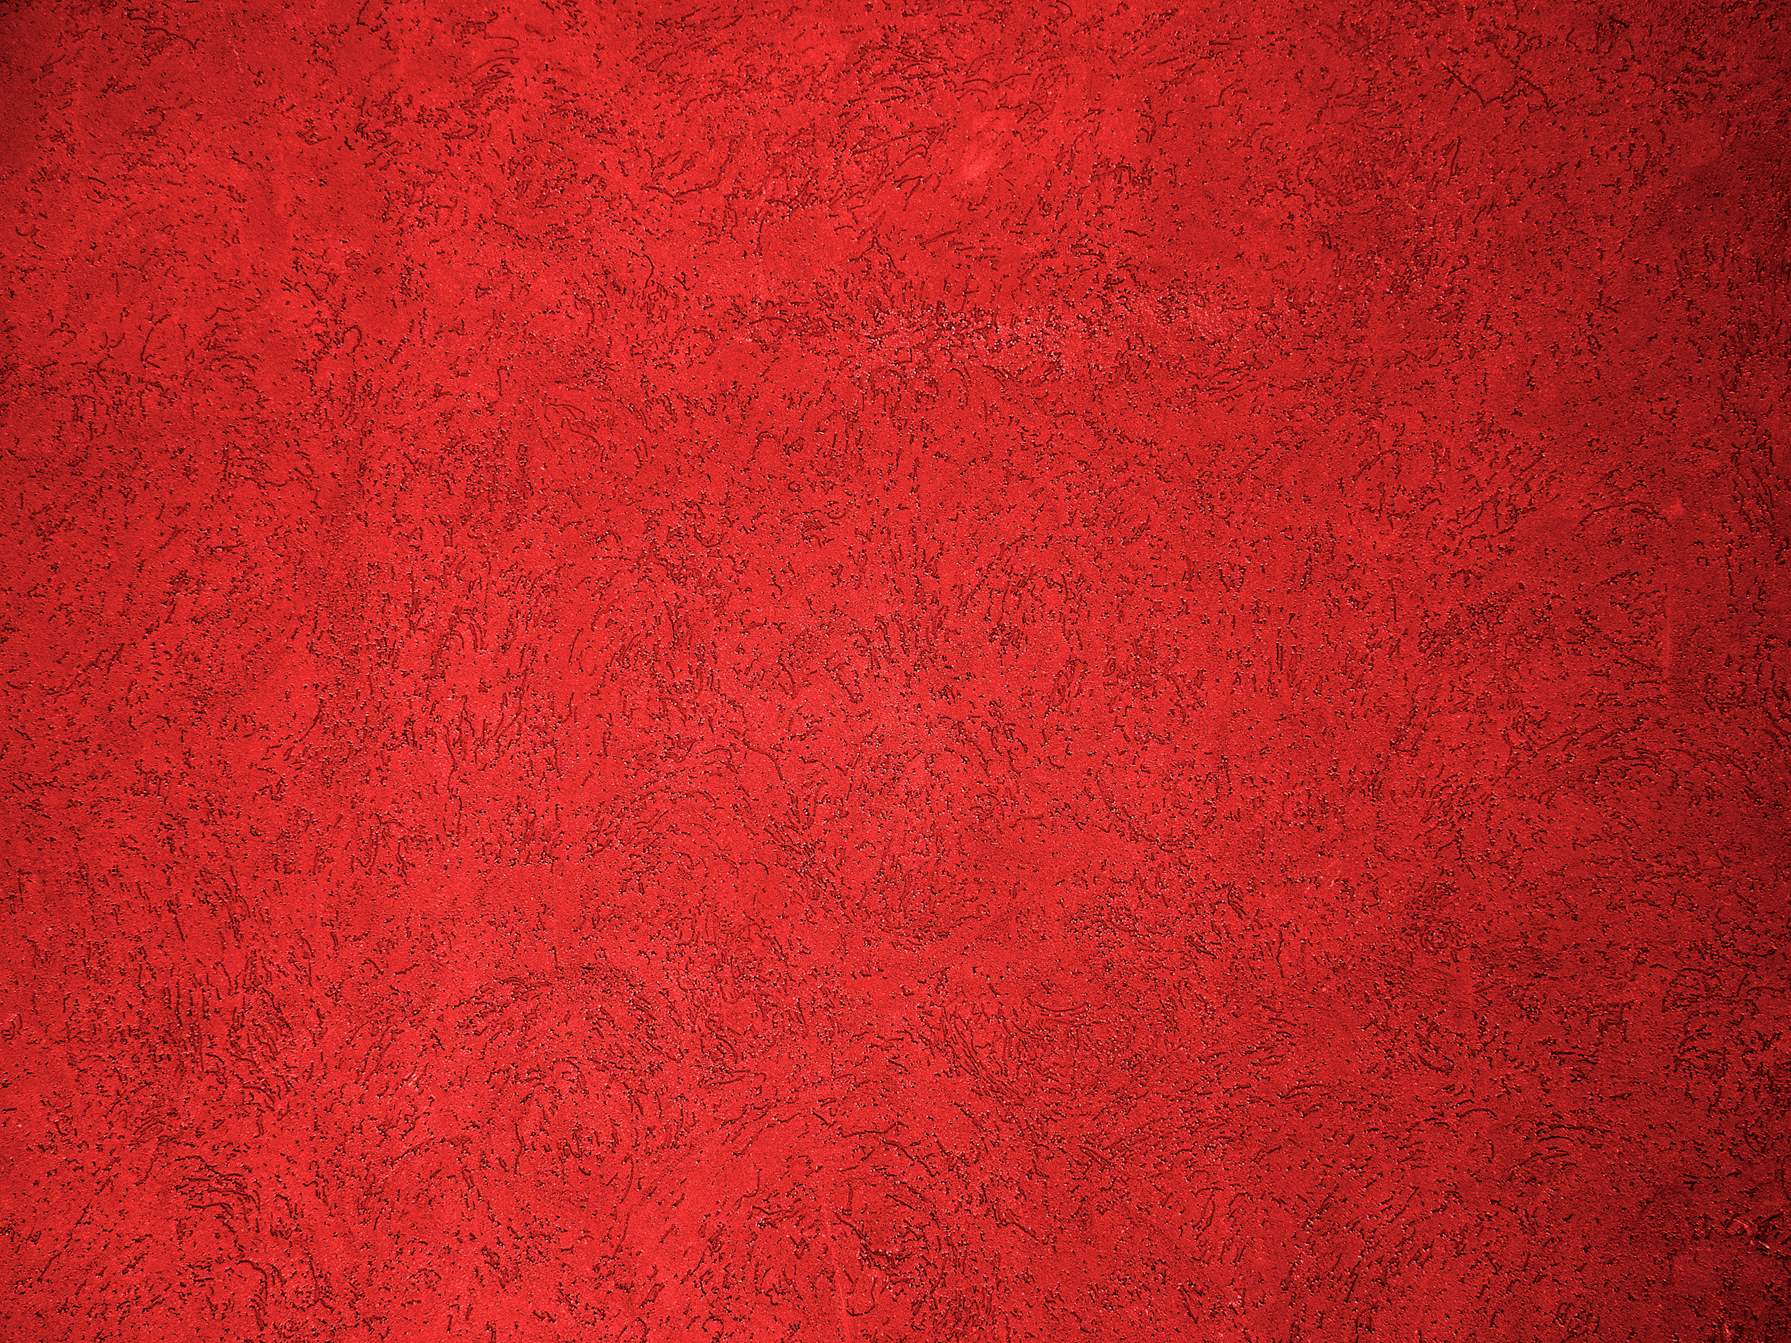 red wall texture background photohdx